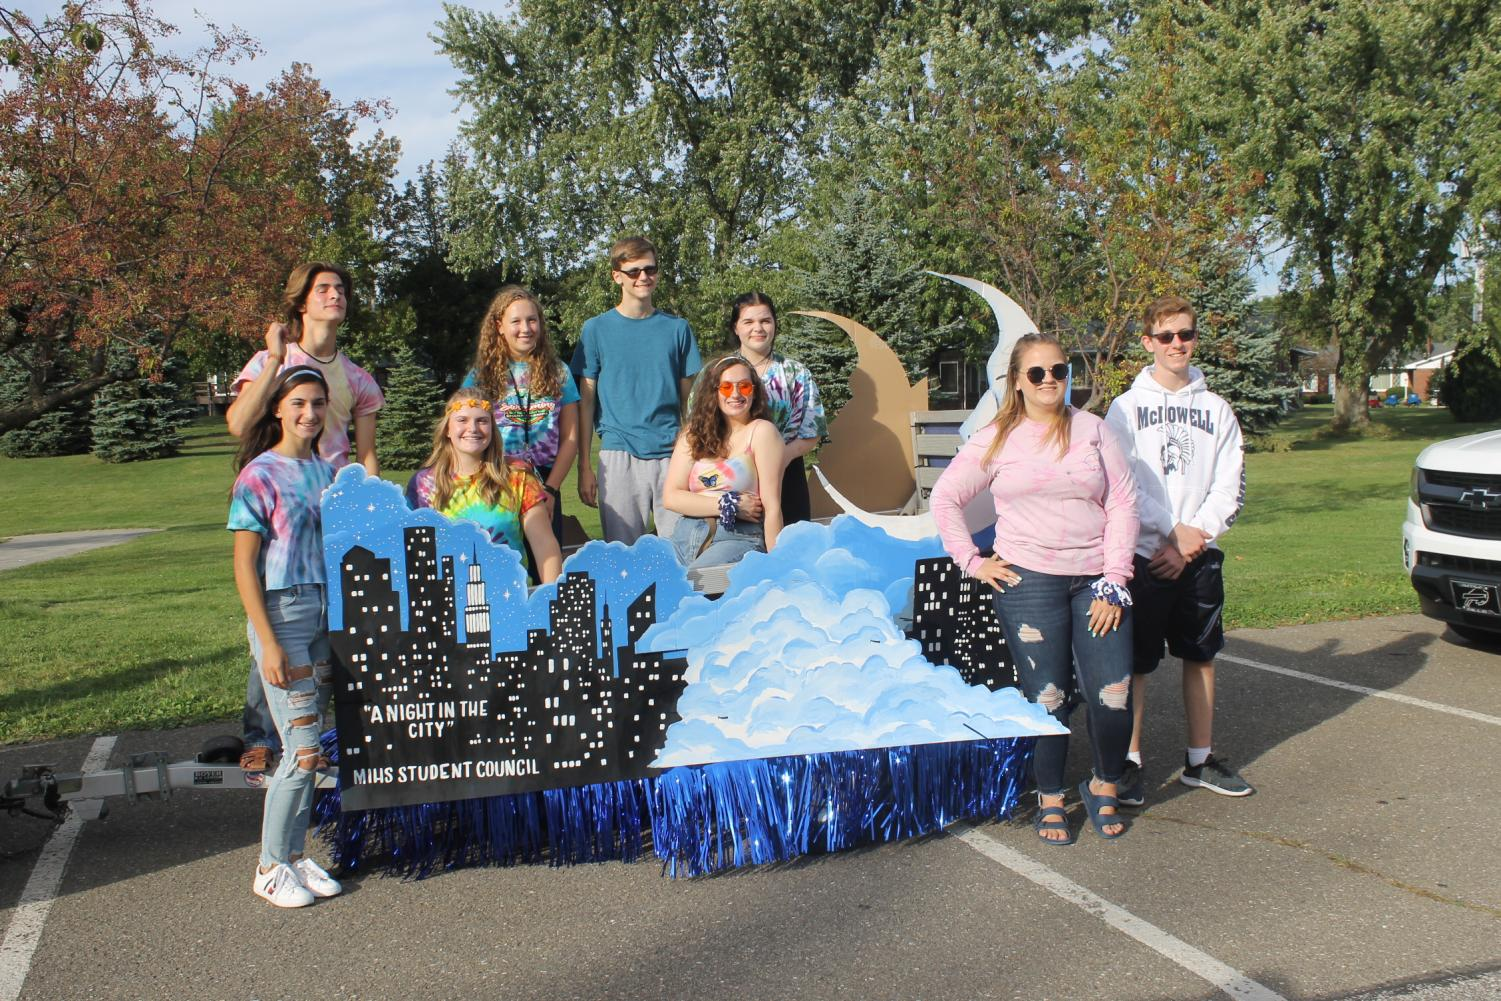 The+winner+of+the+float+contest+at+the+high+school+level%3A+MIHS+Student+Council.